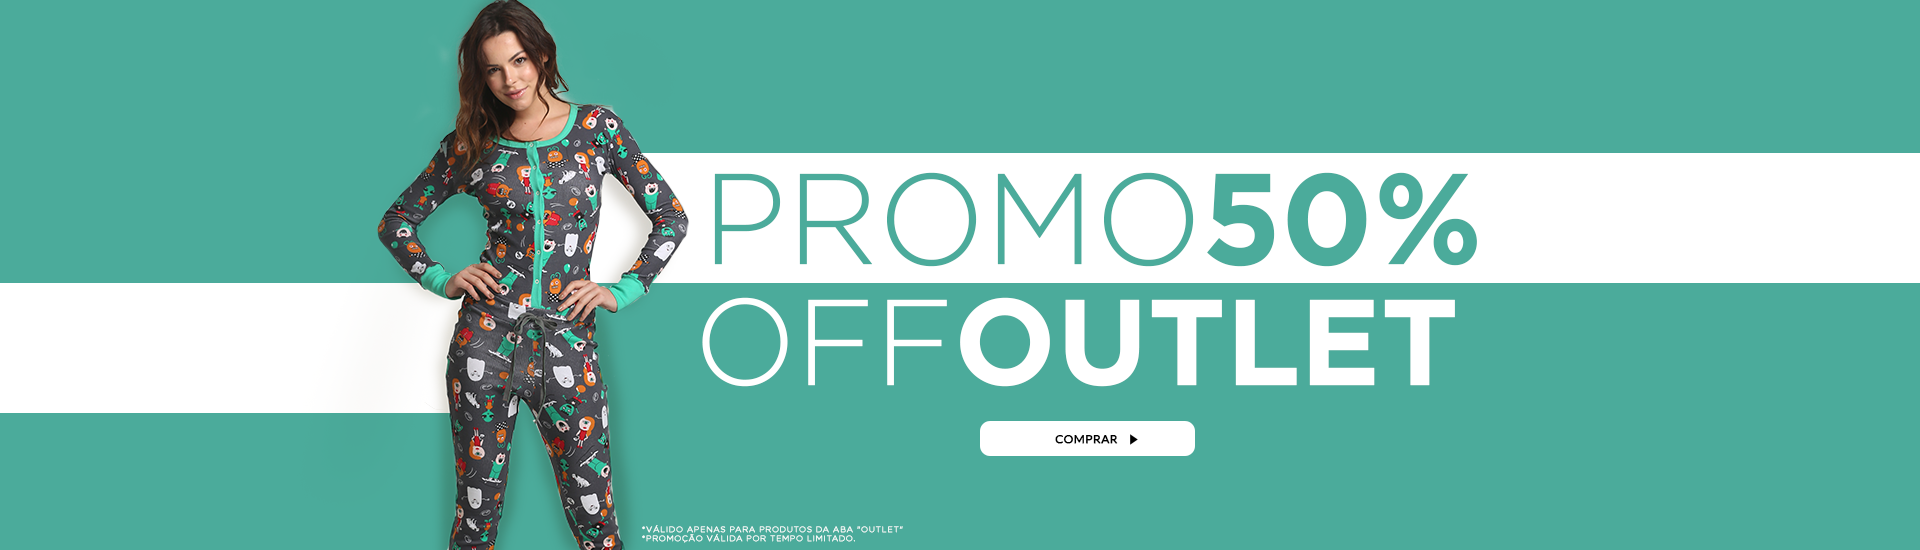 Outlet 50%Off